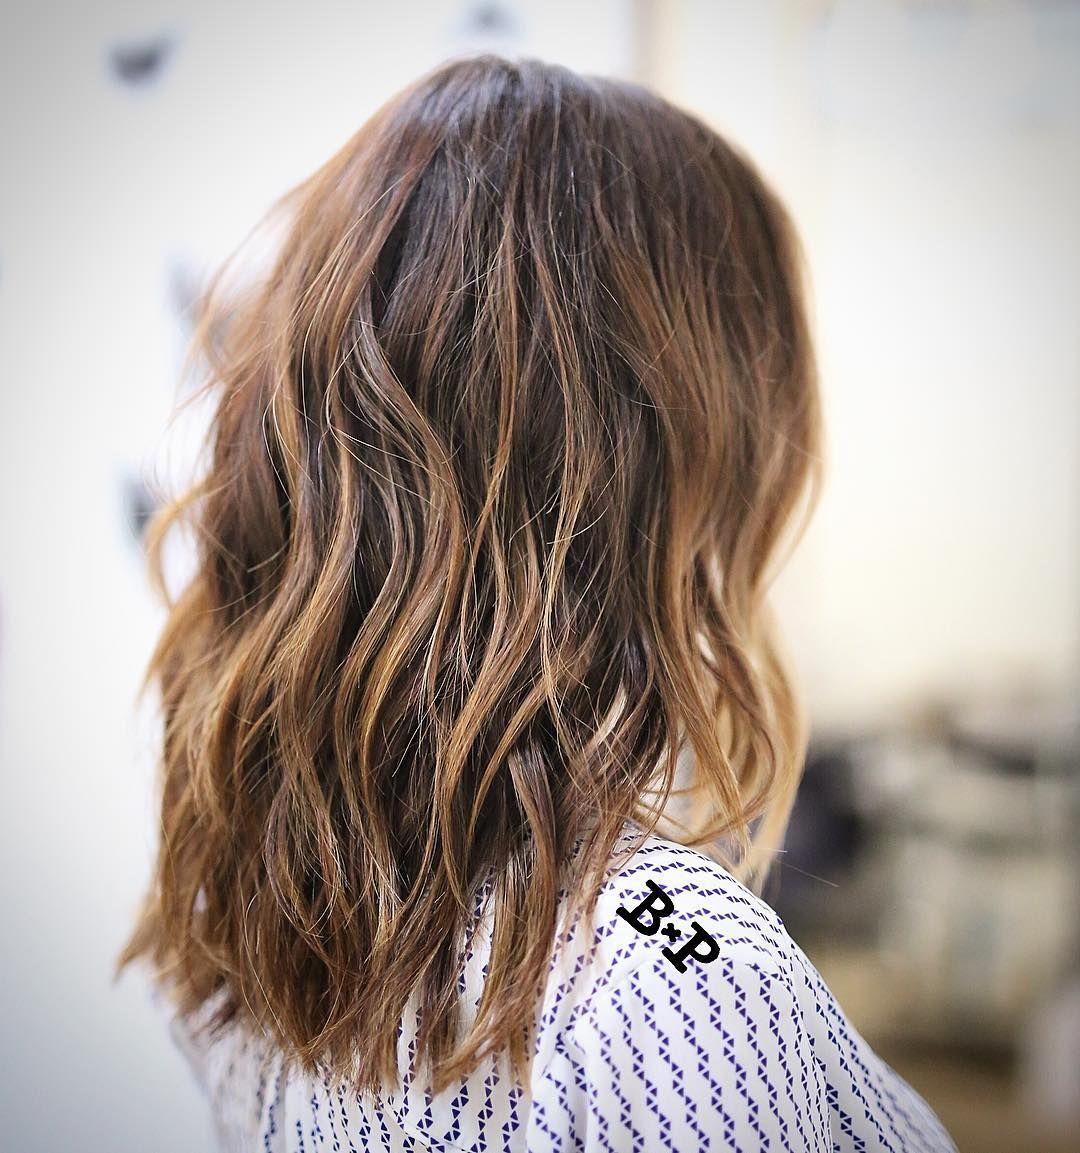 Wavy Chestnut Brown Collarbone Length Hair With Caramel Balayage And Layers